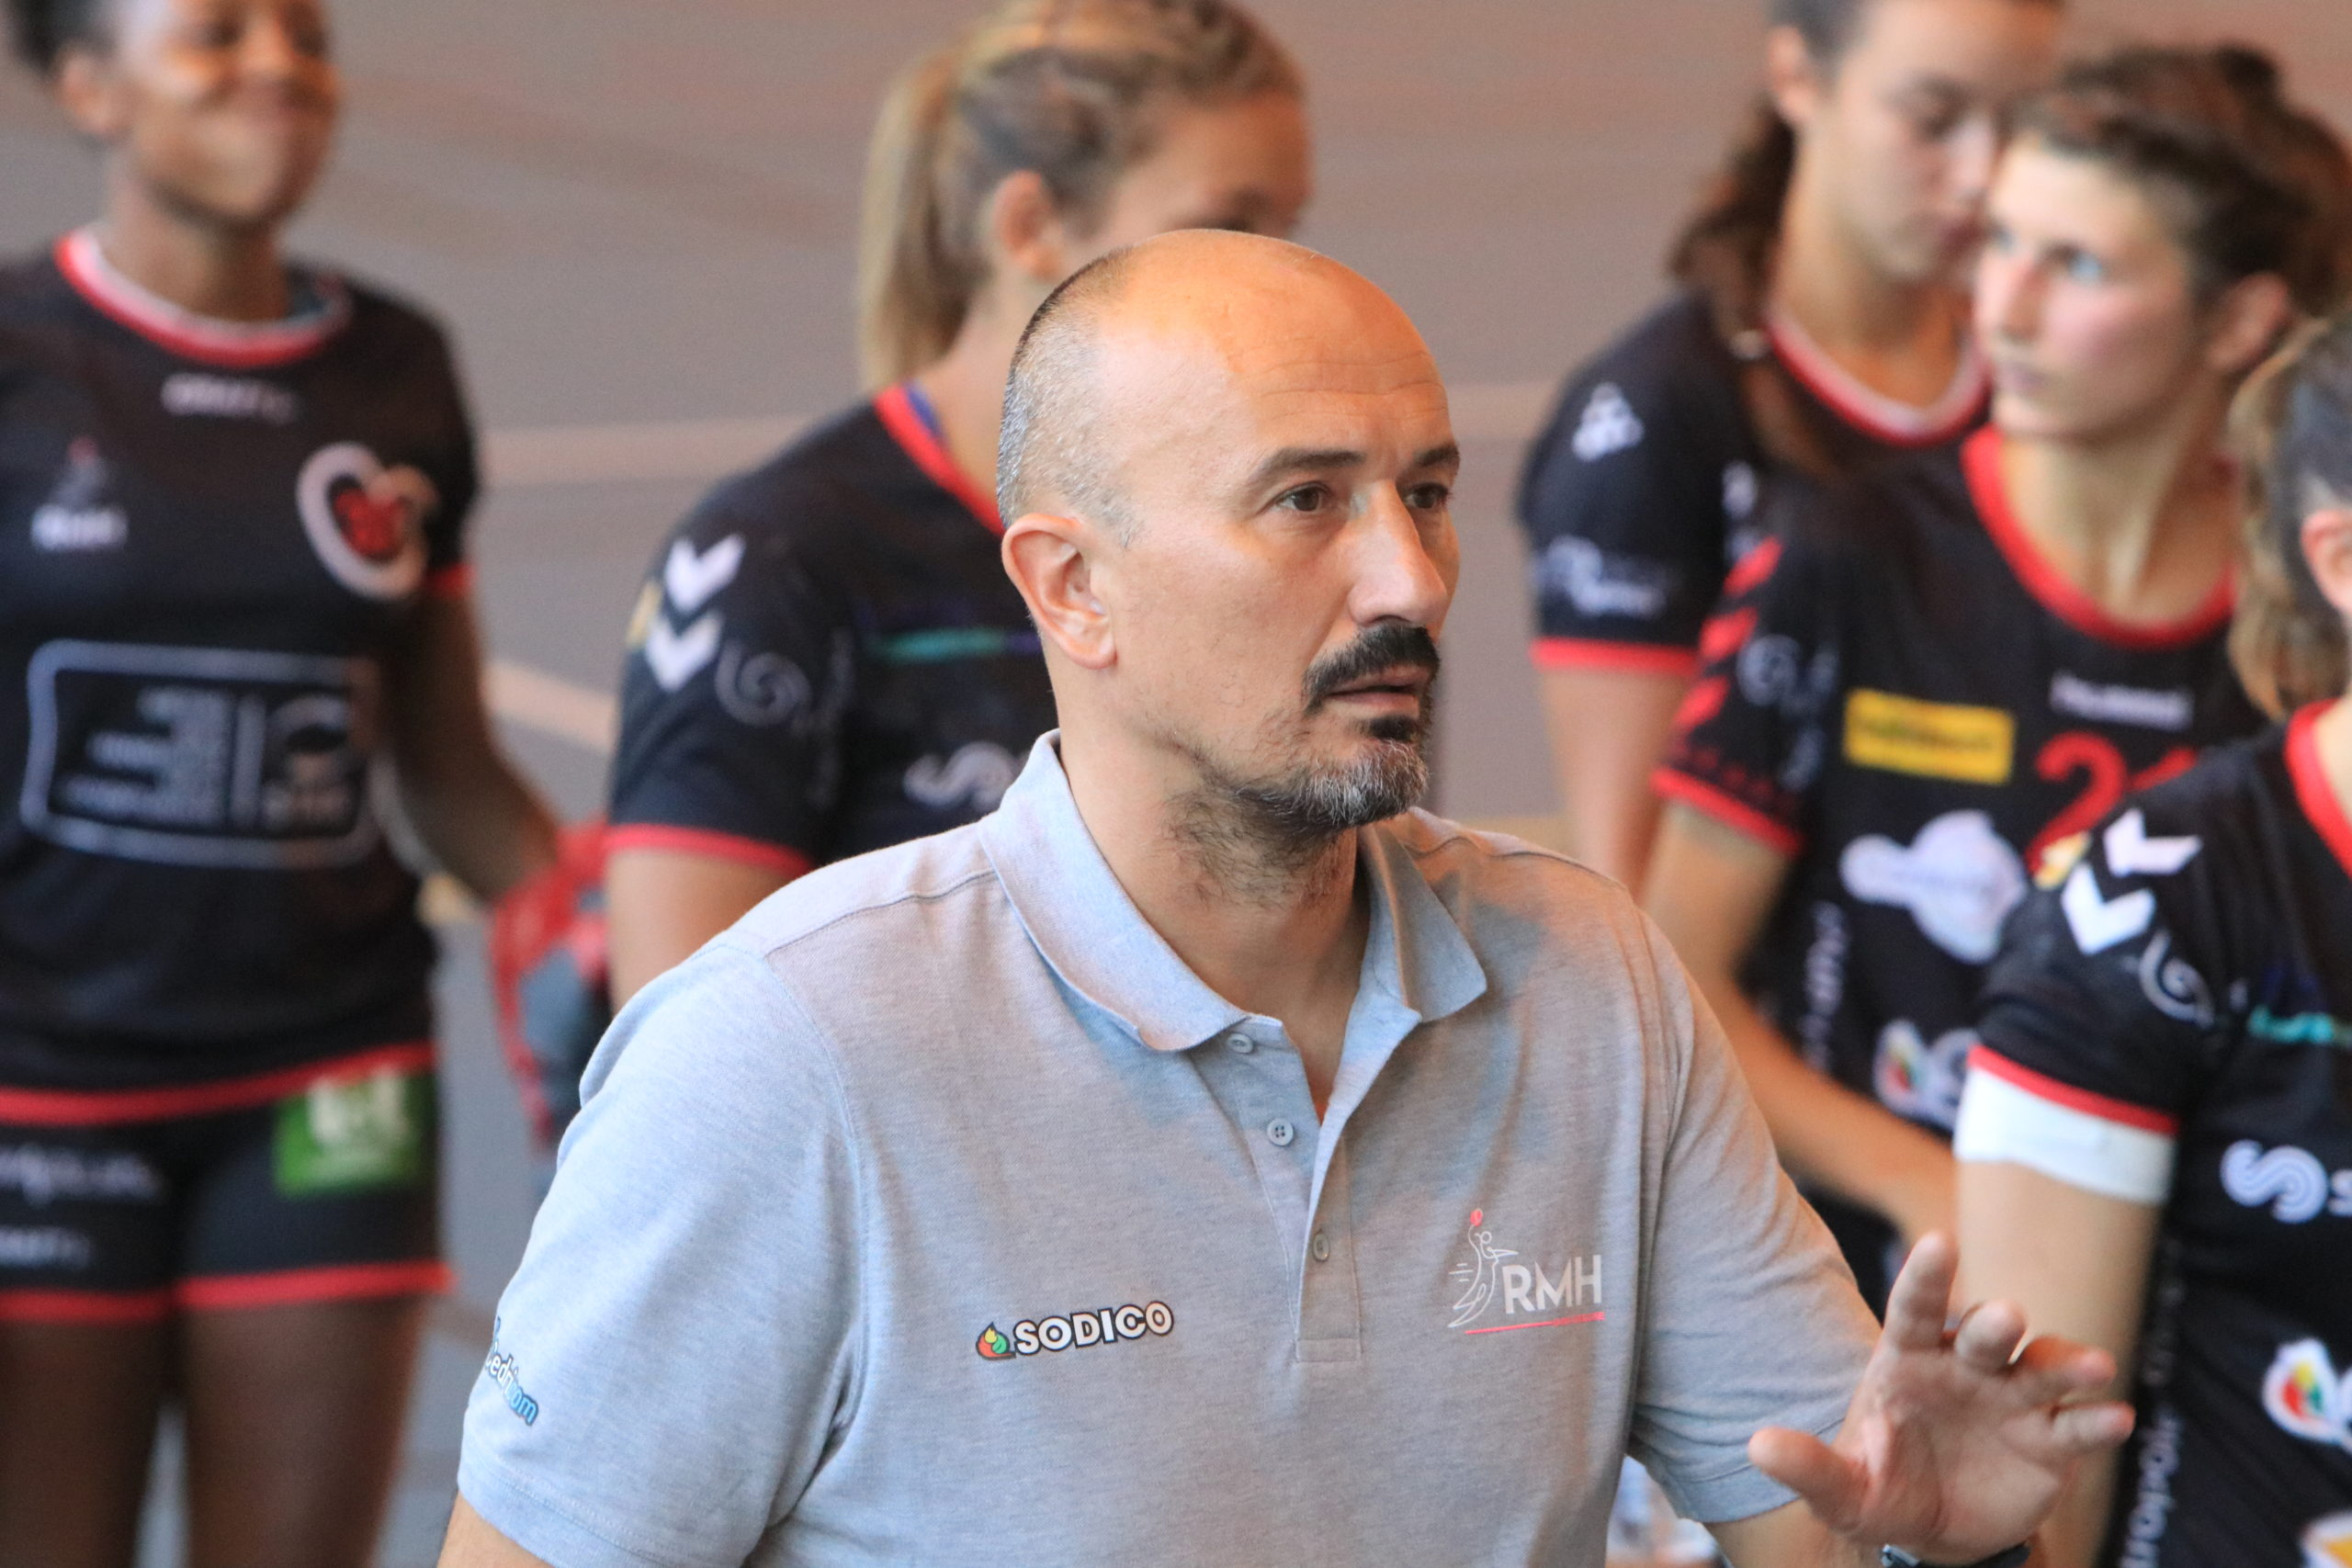 JRS39-PAGE-24-DOSSIER-COACH-OLIVIER-MANTES